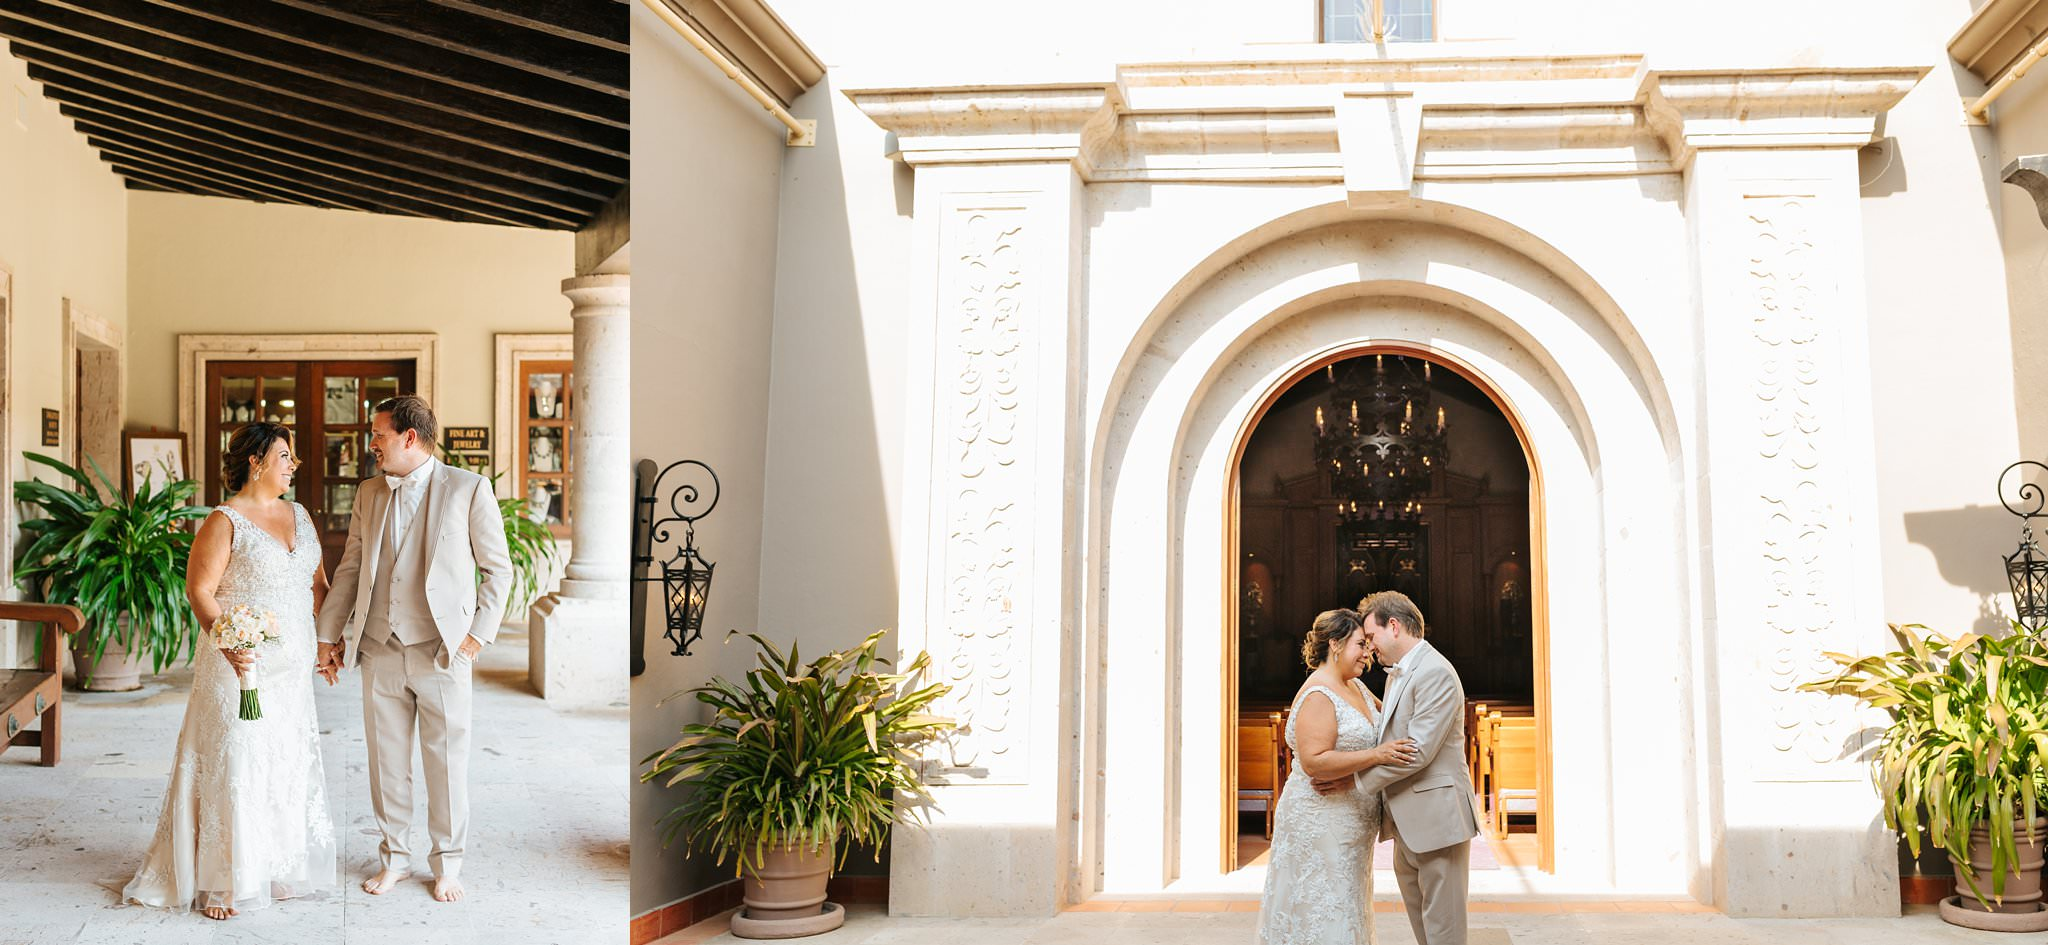 Bride and Groom Romantics at Pueblo Bonito Sunset Beach Resort - Cabo Wedding in Cabo San Lucas, Mexico - https://brittneyhannonphotography.com